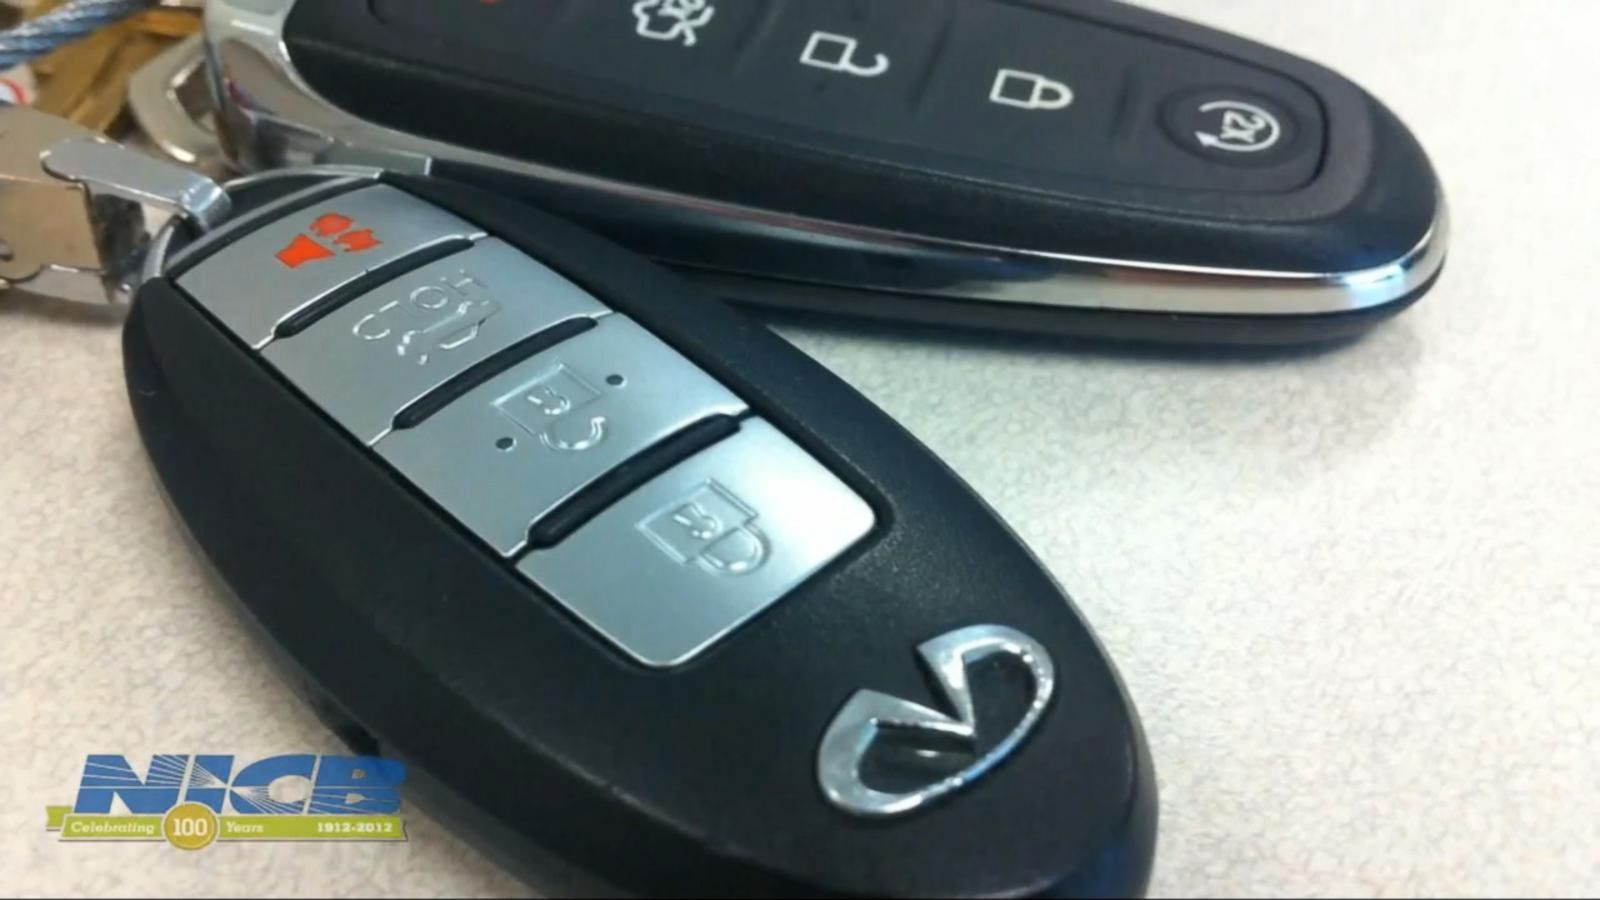 Experts say car key fob hacks could become the latest theft tool for